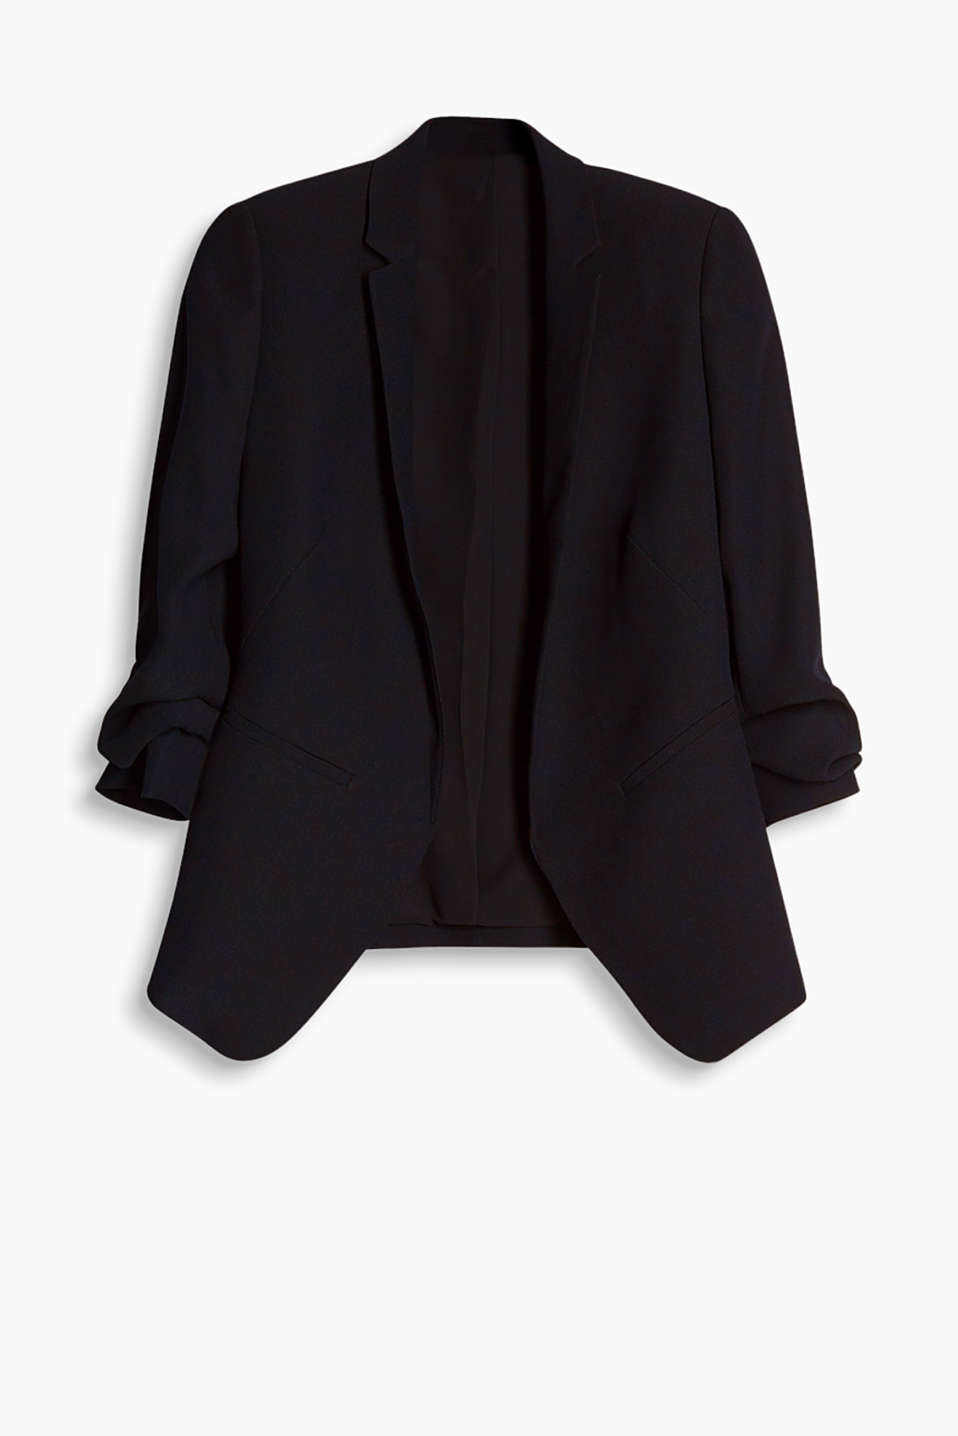 Open blazer in flowing fabric with gathered sleeves